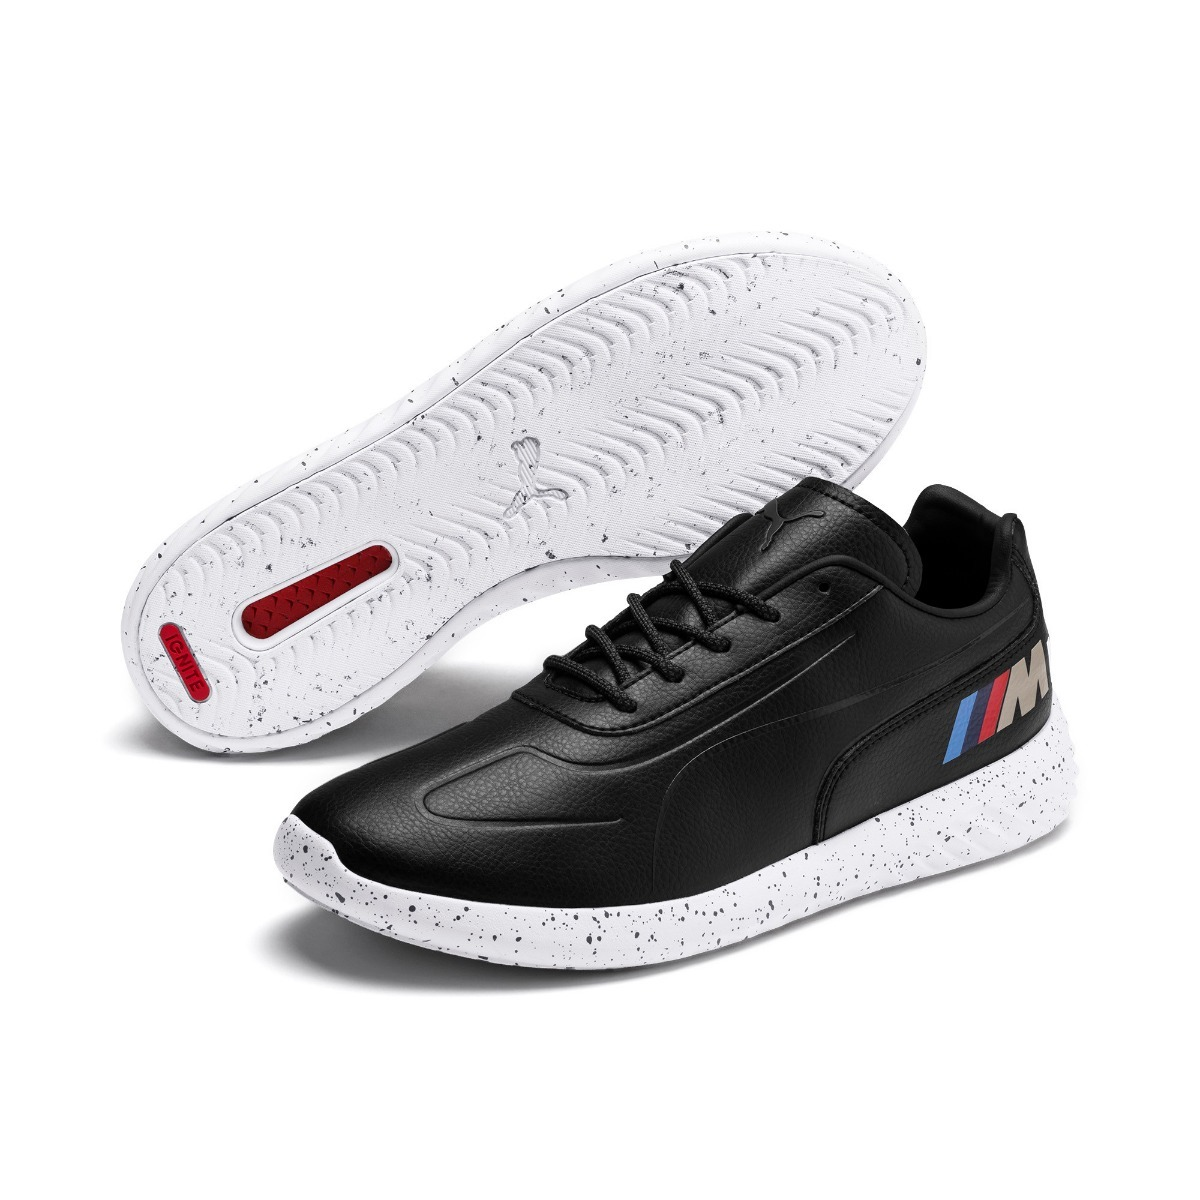 851506ca2d tenis puma bmw motorsport speed cat evo synth originales. Cargando zoom.